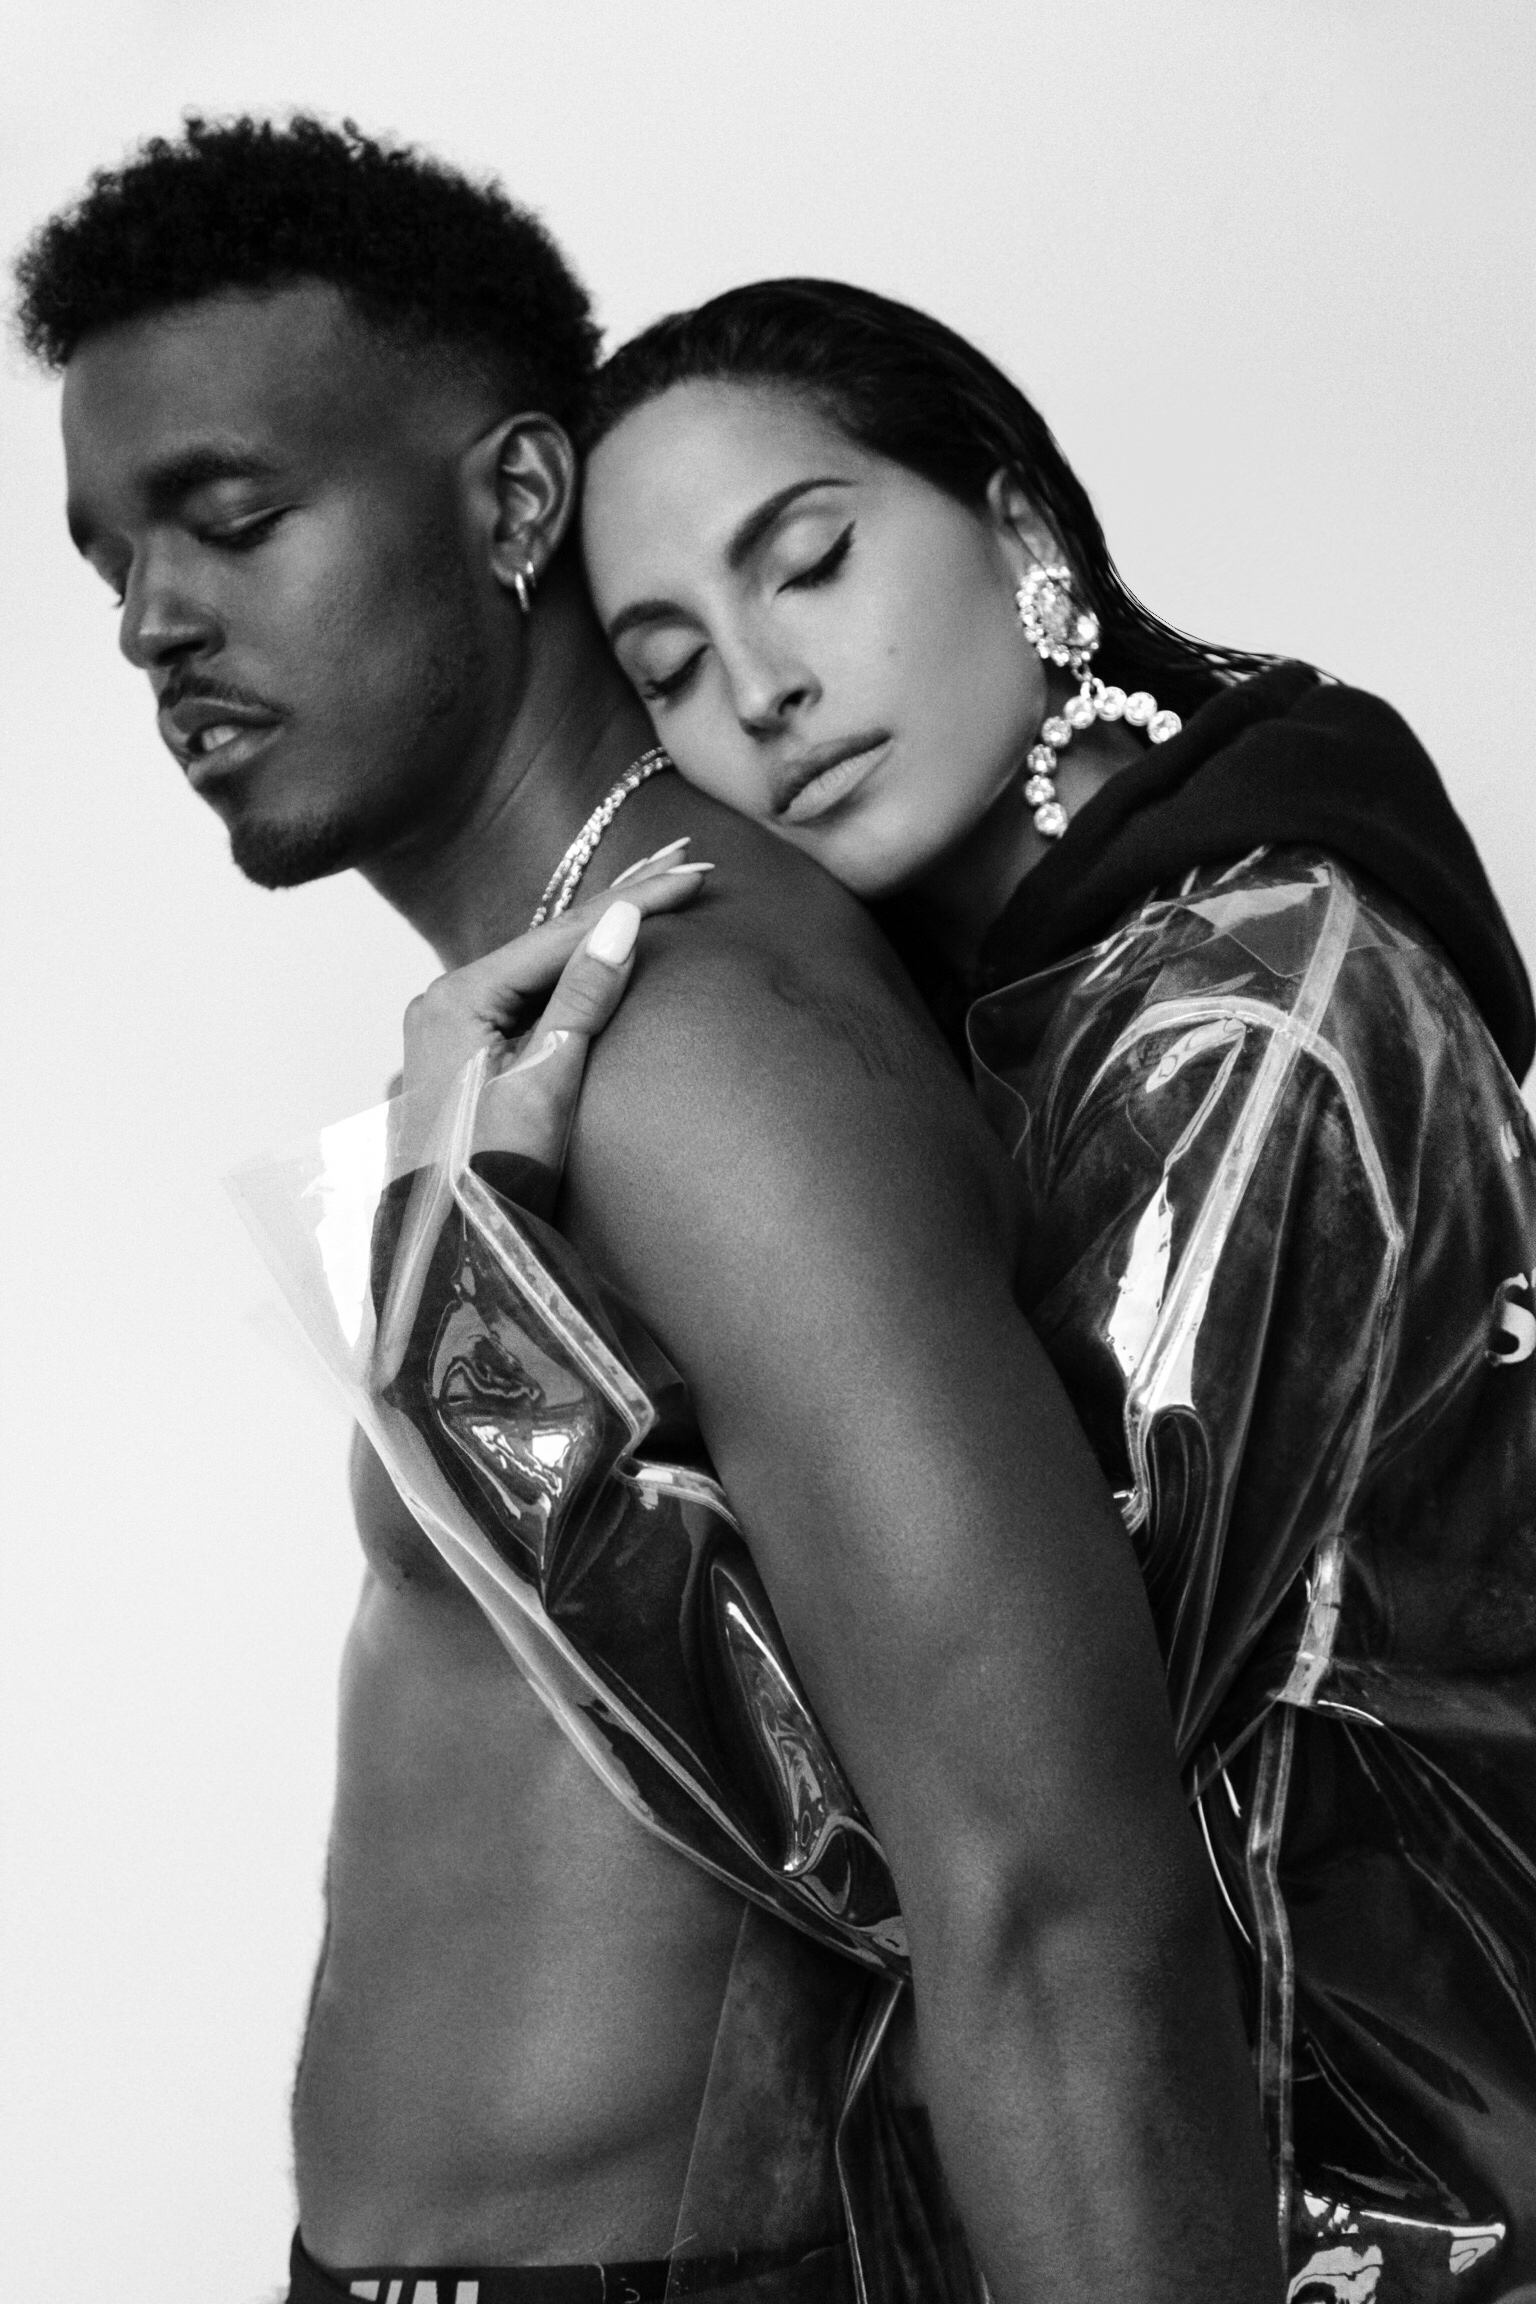 Luke James & Snoh Aalegra